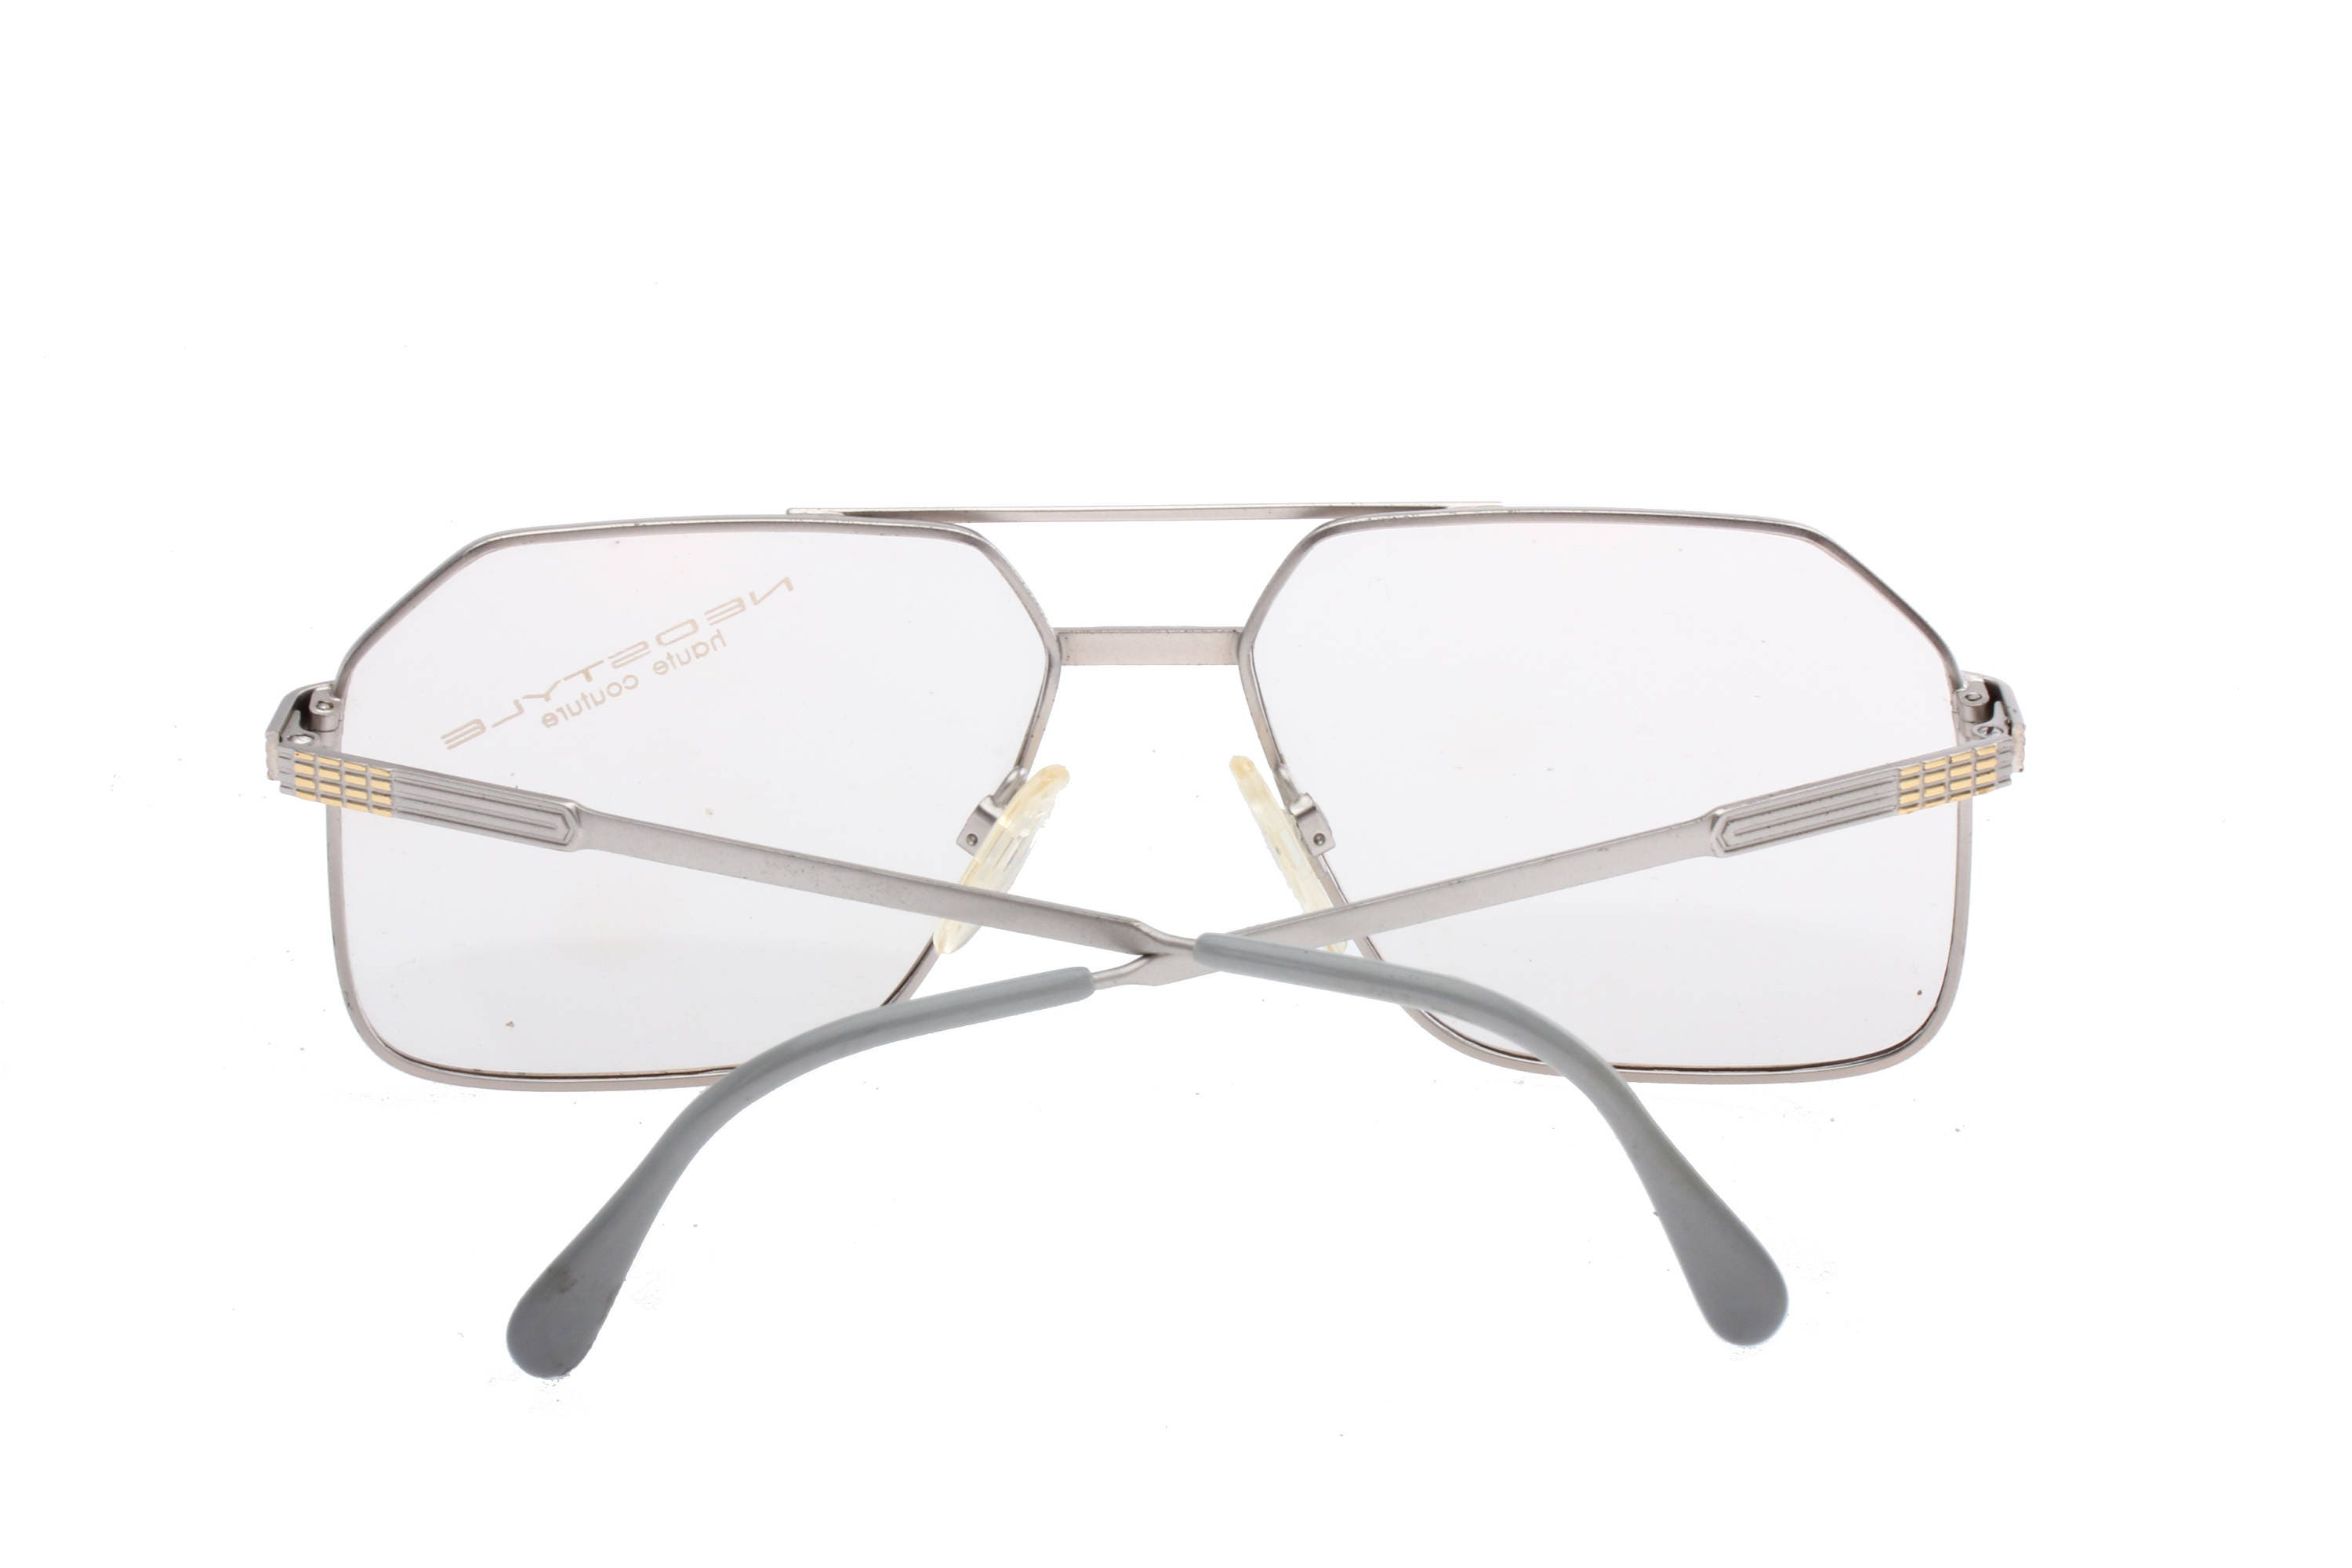 62b9bb67bb Neostyle haute couture Office 44 classy squared silver   gold aviator  eyeglasses frames made in Germany